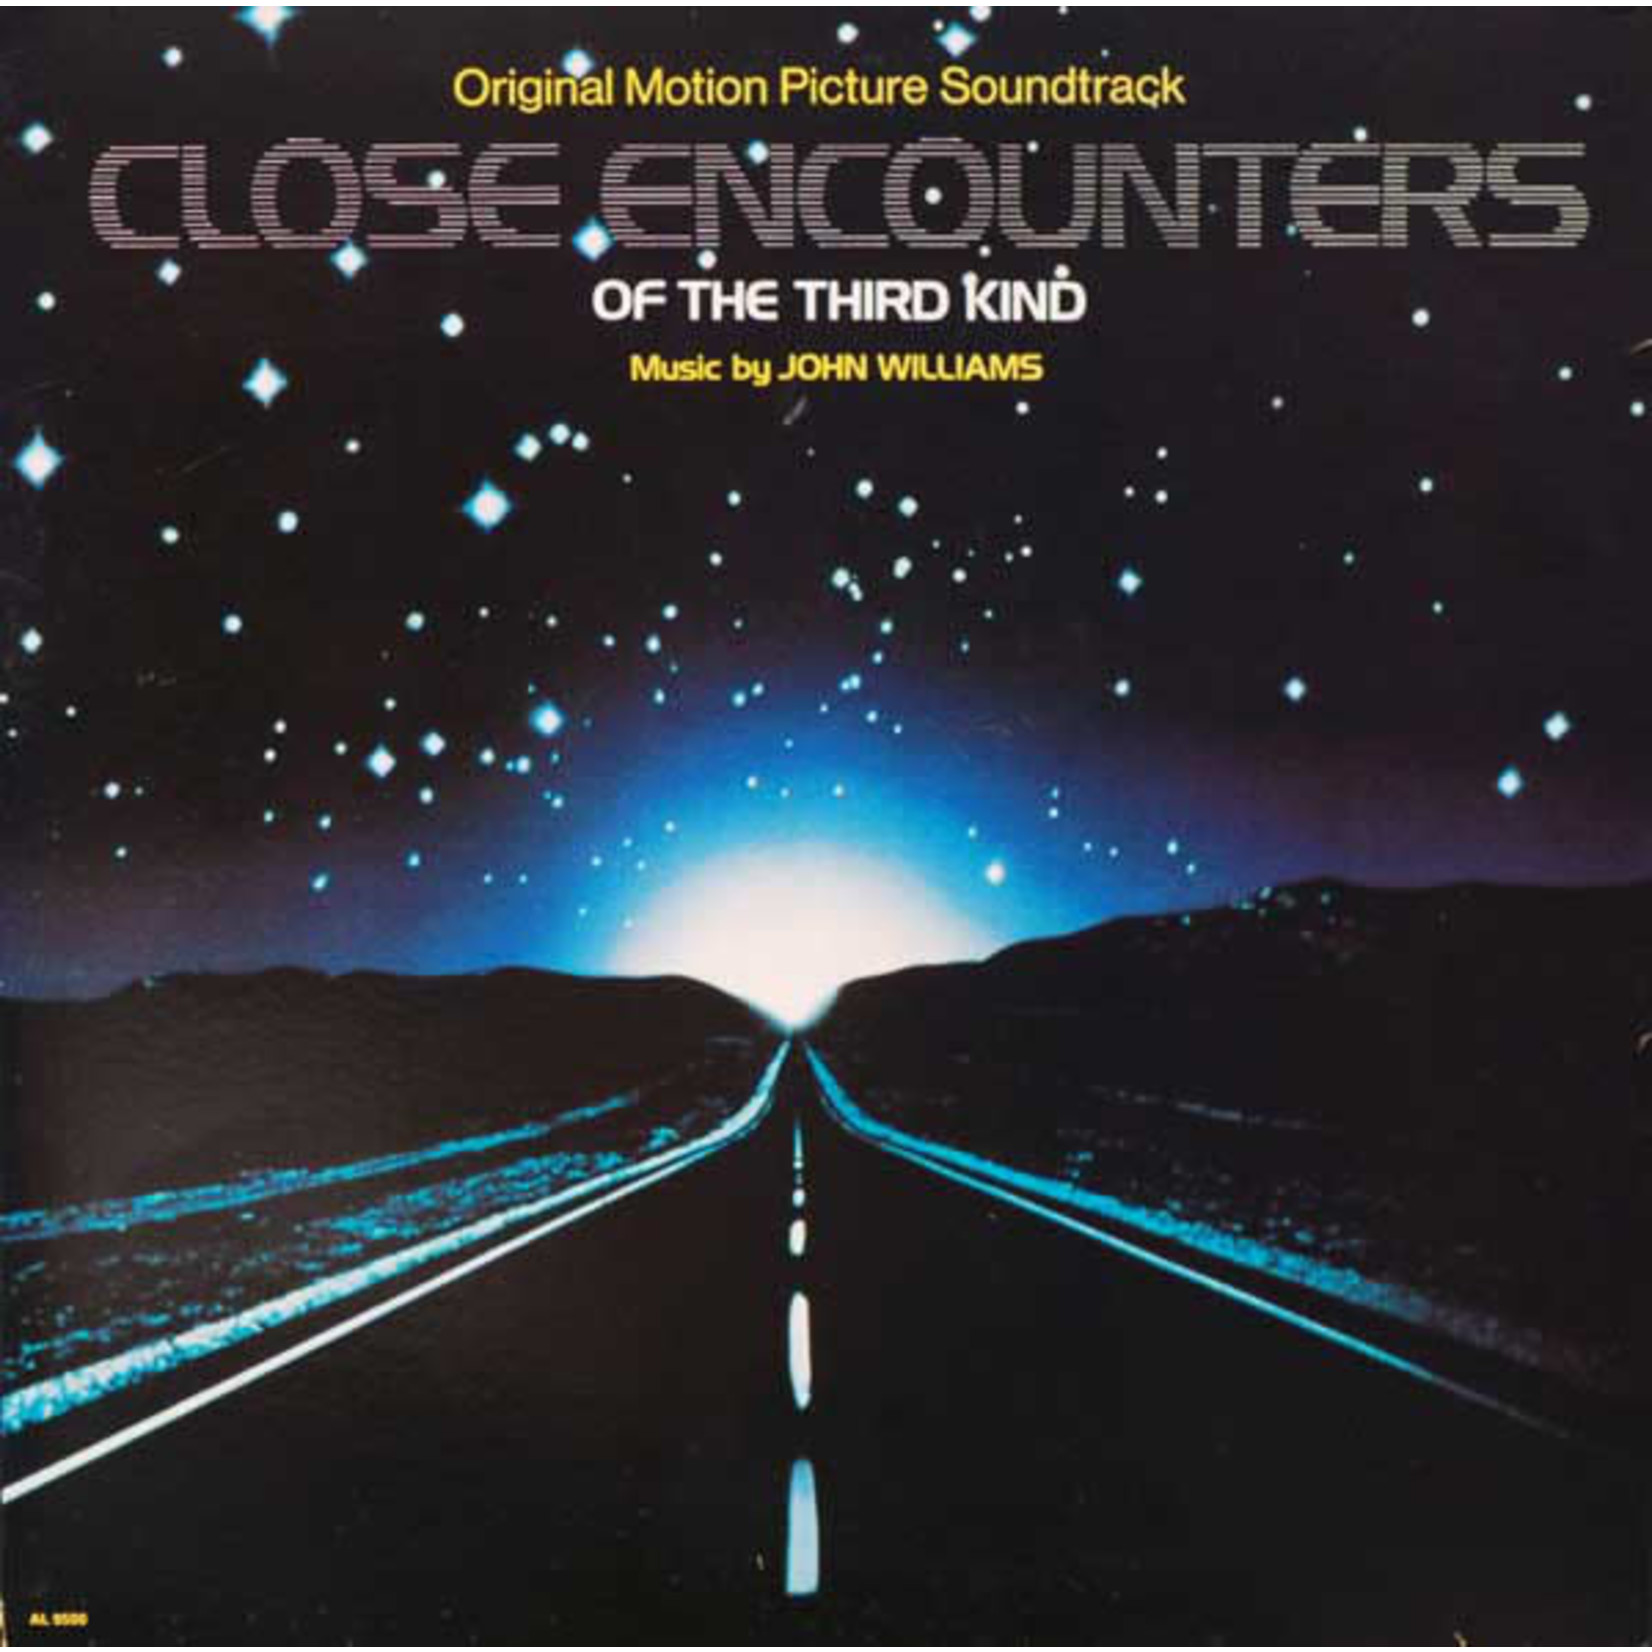 [Vintage] Williams, John: Close Encounters of the Third Kind (Soundtrack)